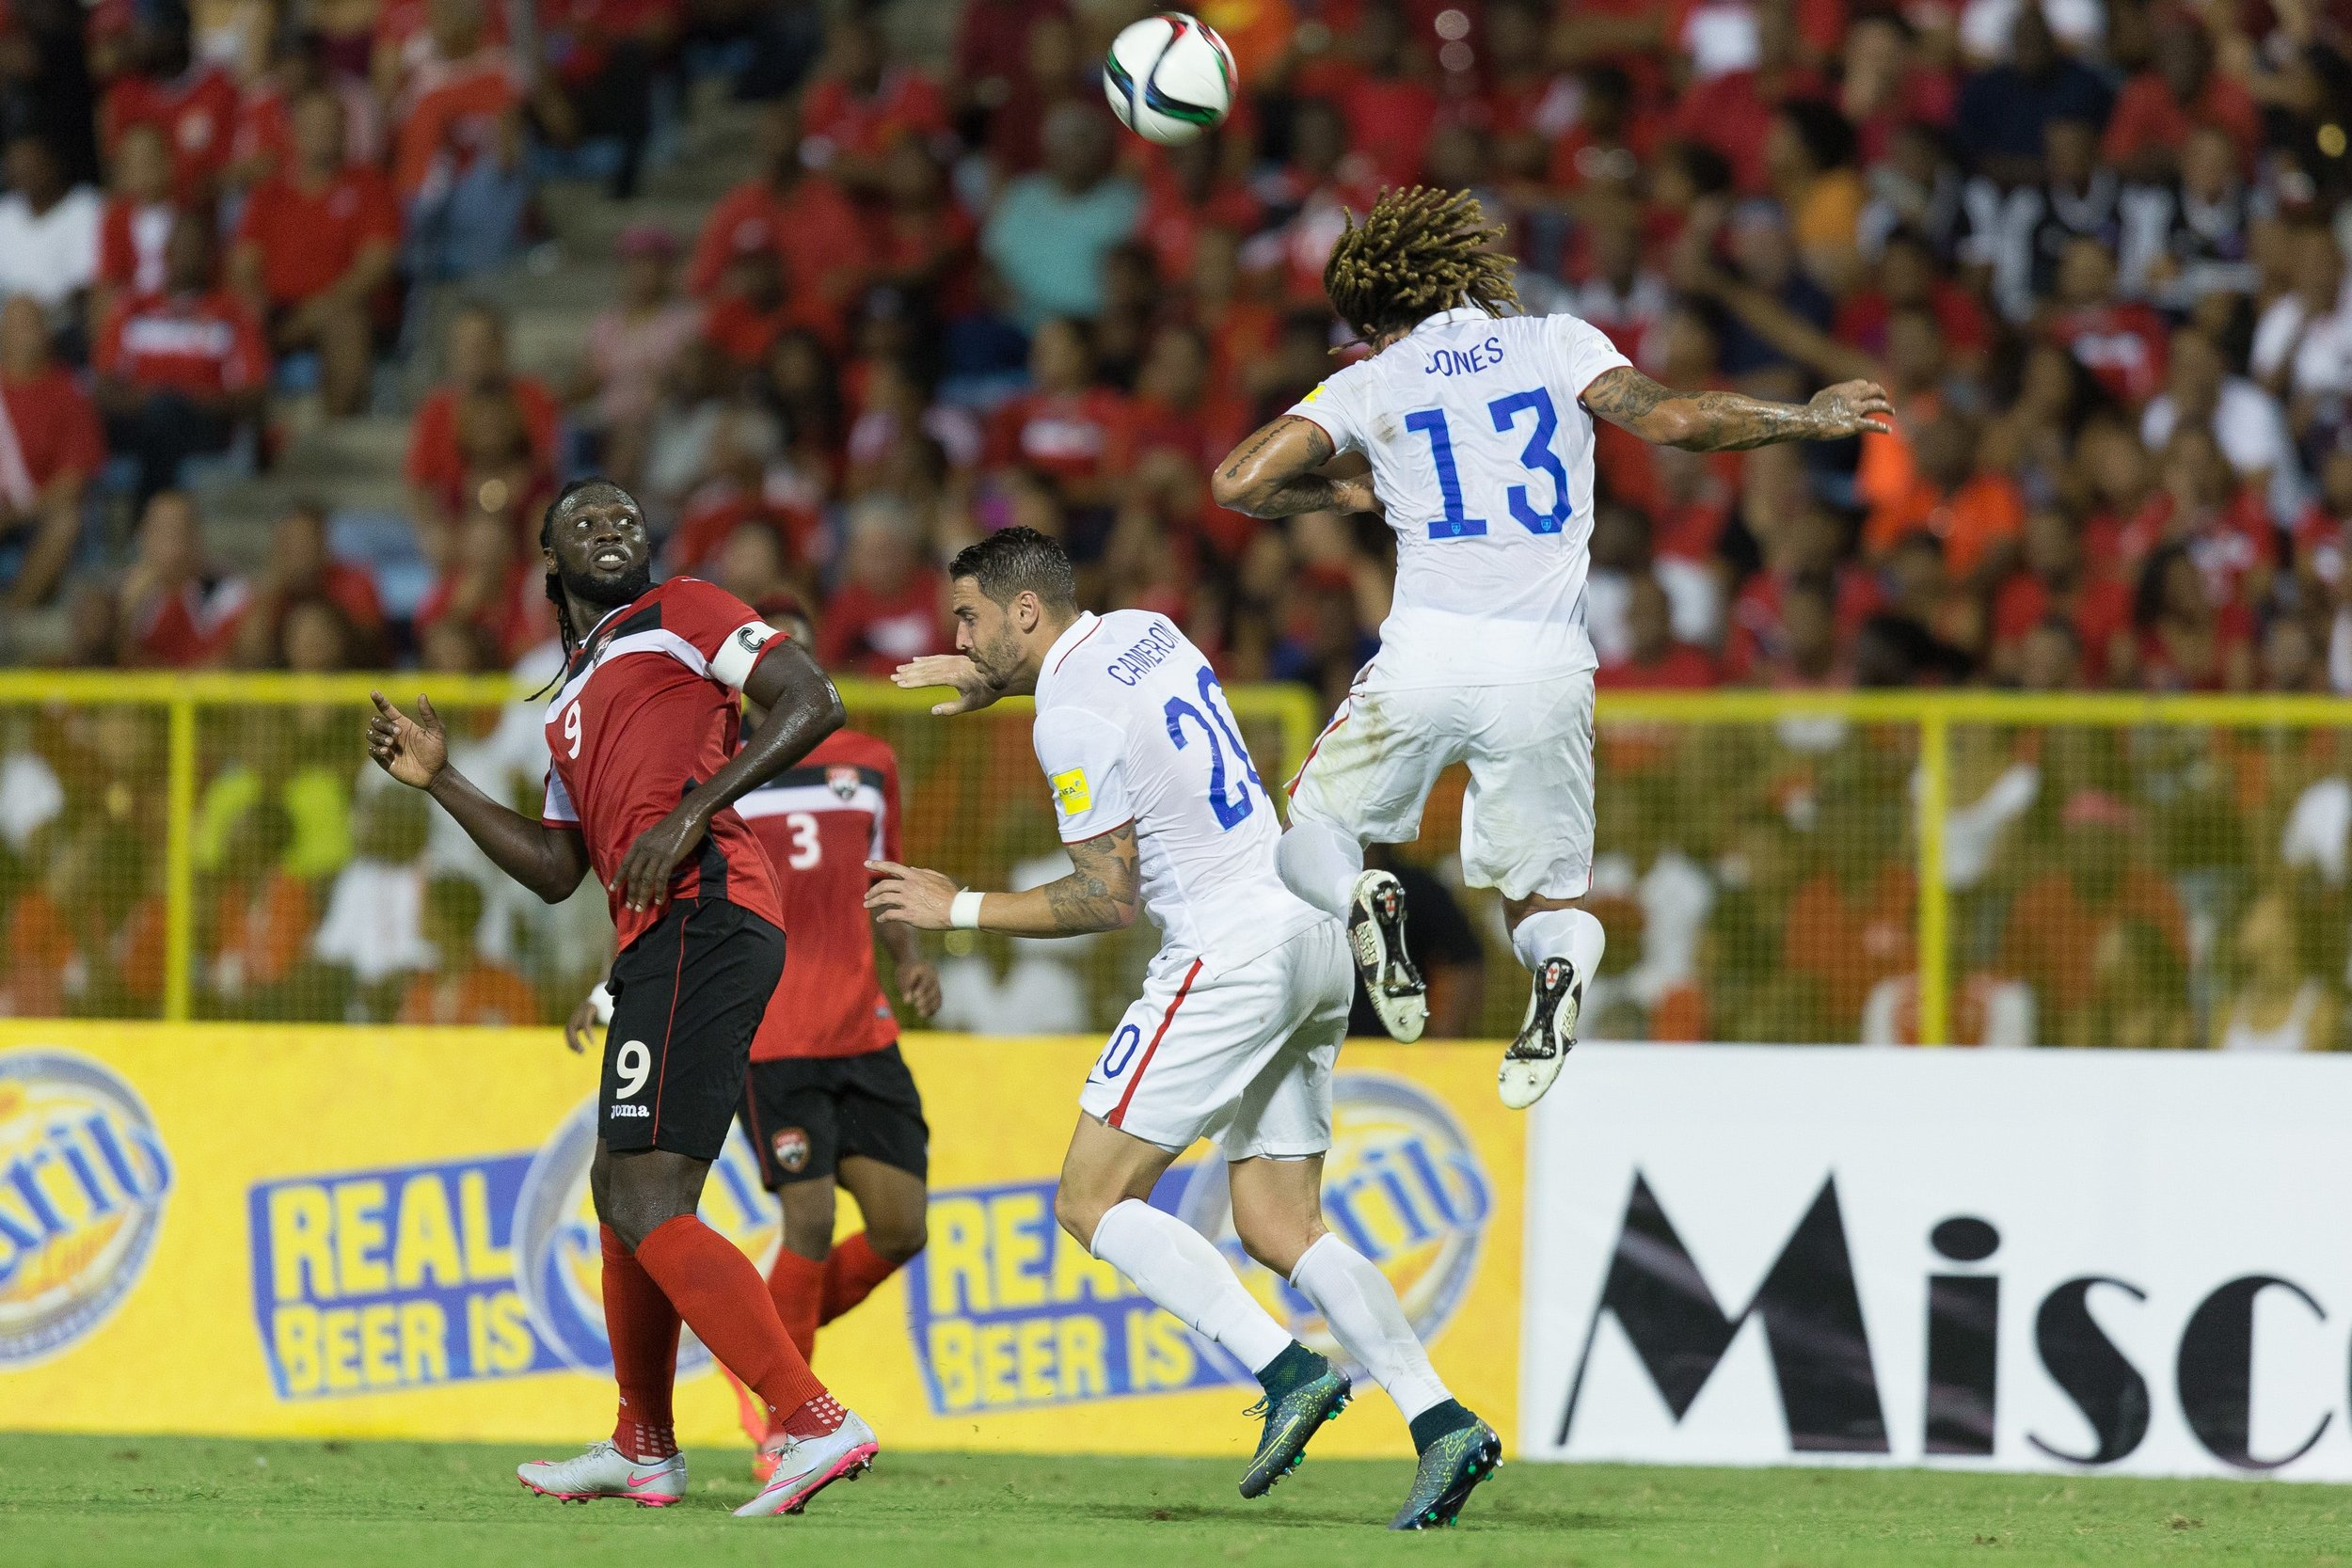 Kenwyne Jones, Geoff Cameron, Jermaine Jones - The U.S. Men's National team drew 0-0 with Trinidad and Tobago in their 2018 FIFA World Cup Qualifying match at Hasely Crawford Stadium. Photographer: John Dorton